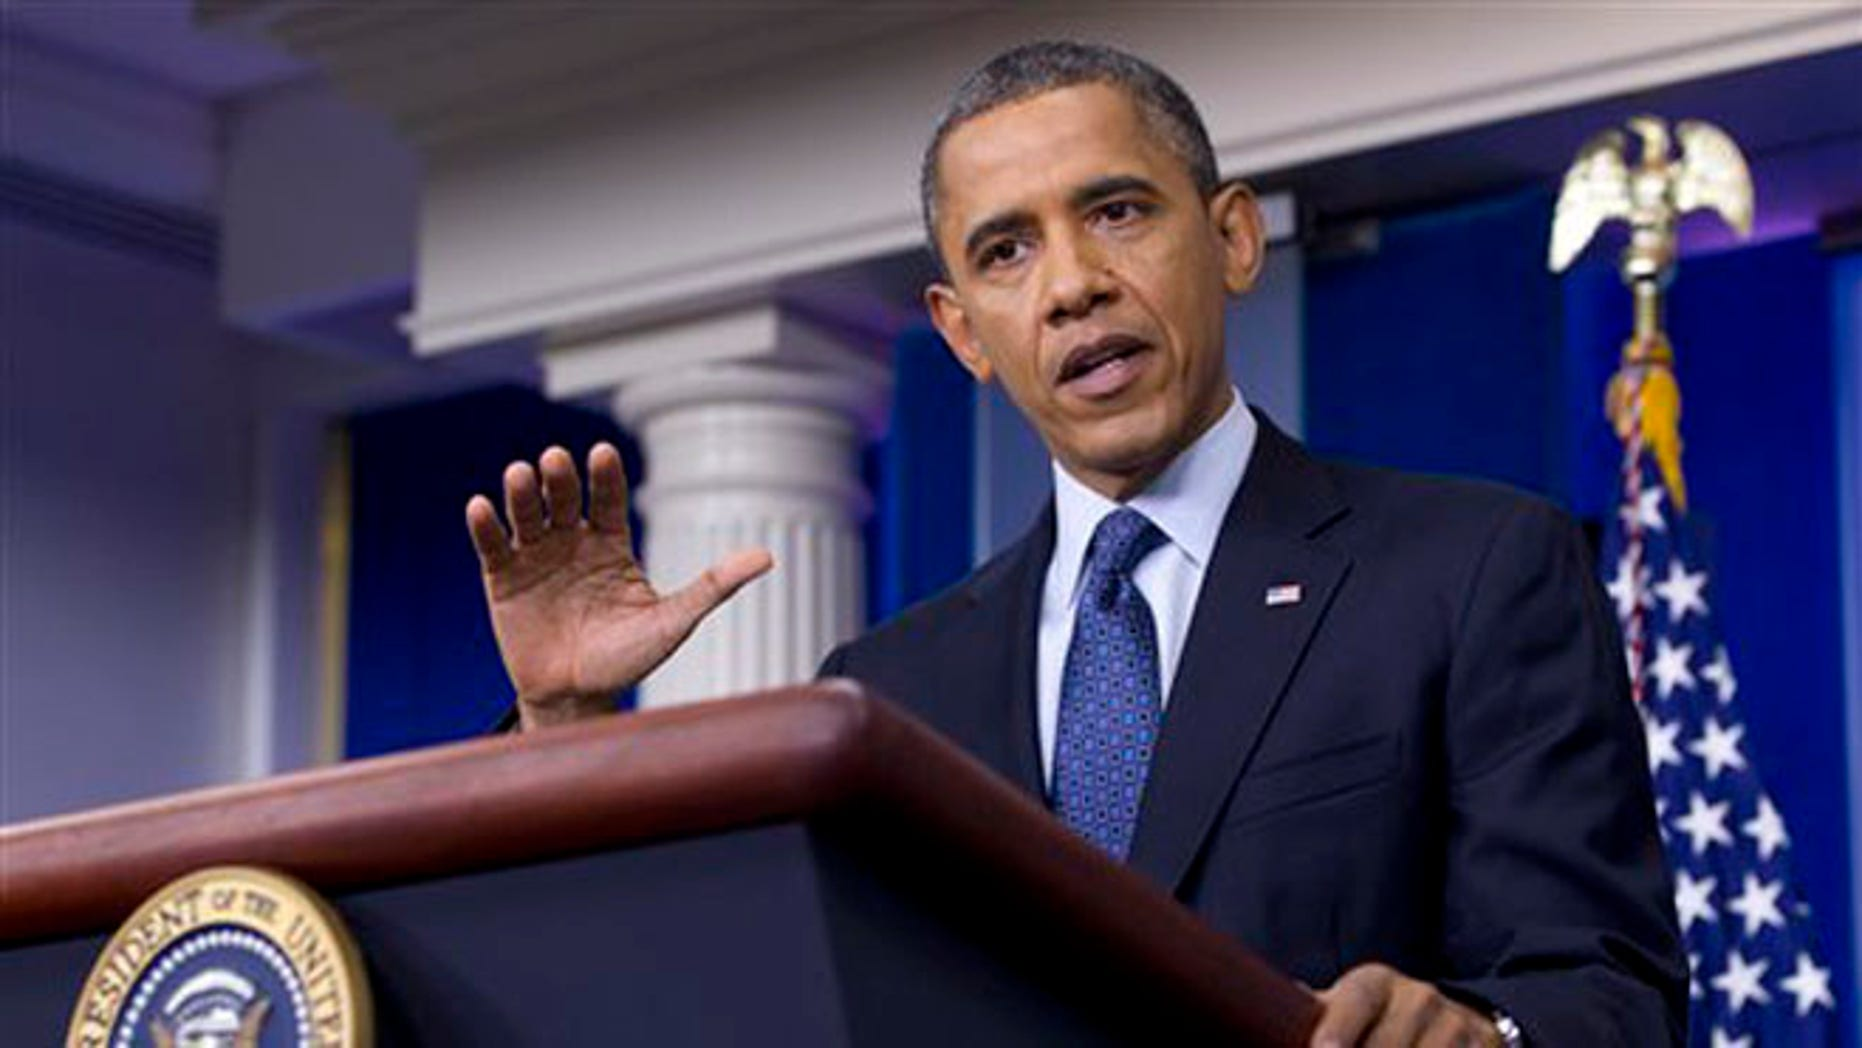 FILE: June 8, 2012: President Obama talks at a press conference inside the White House Briefing Room, in Washington.